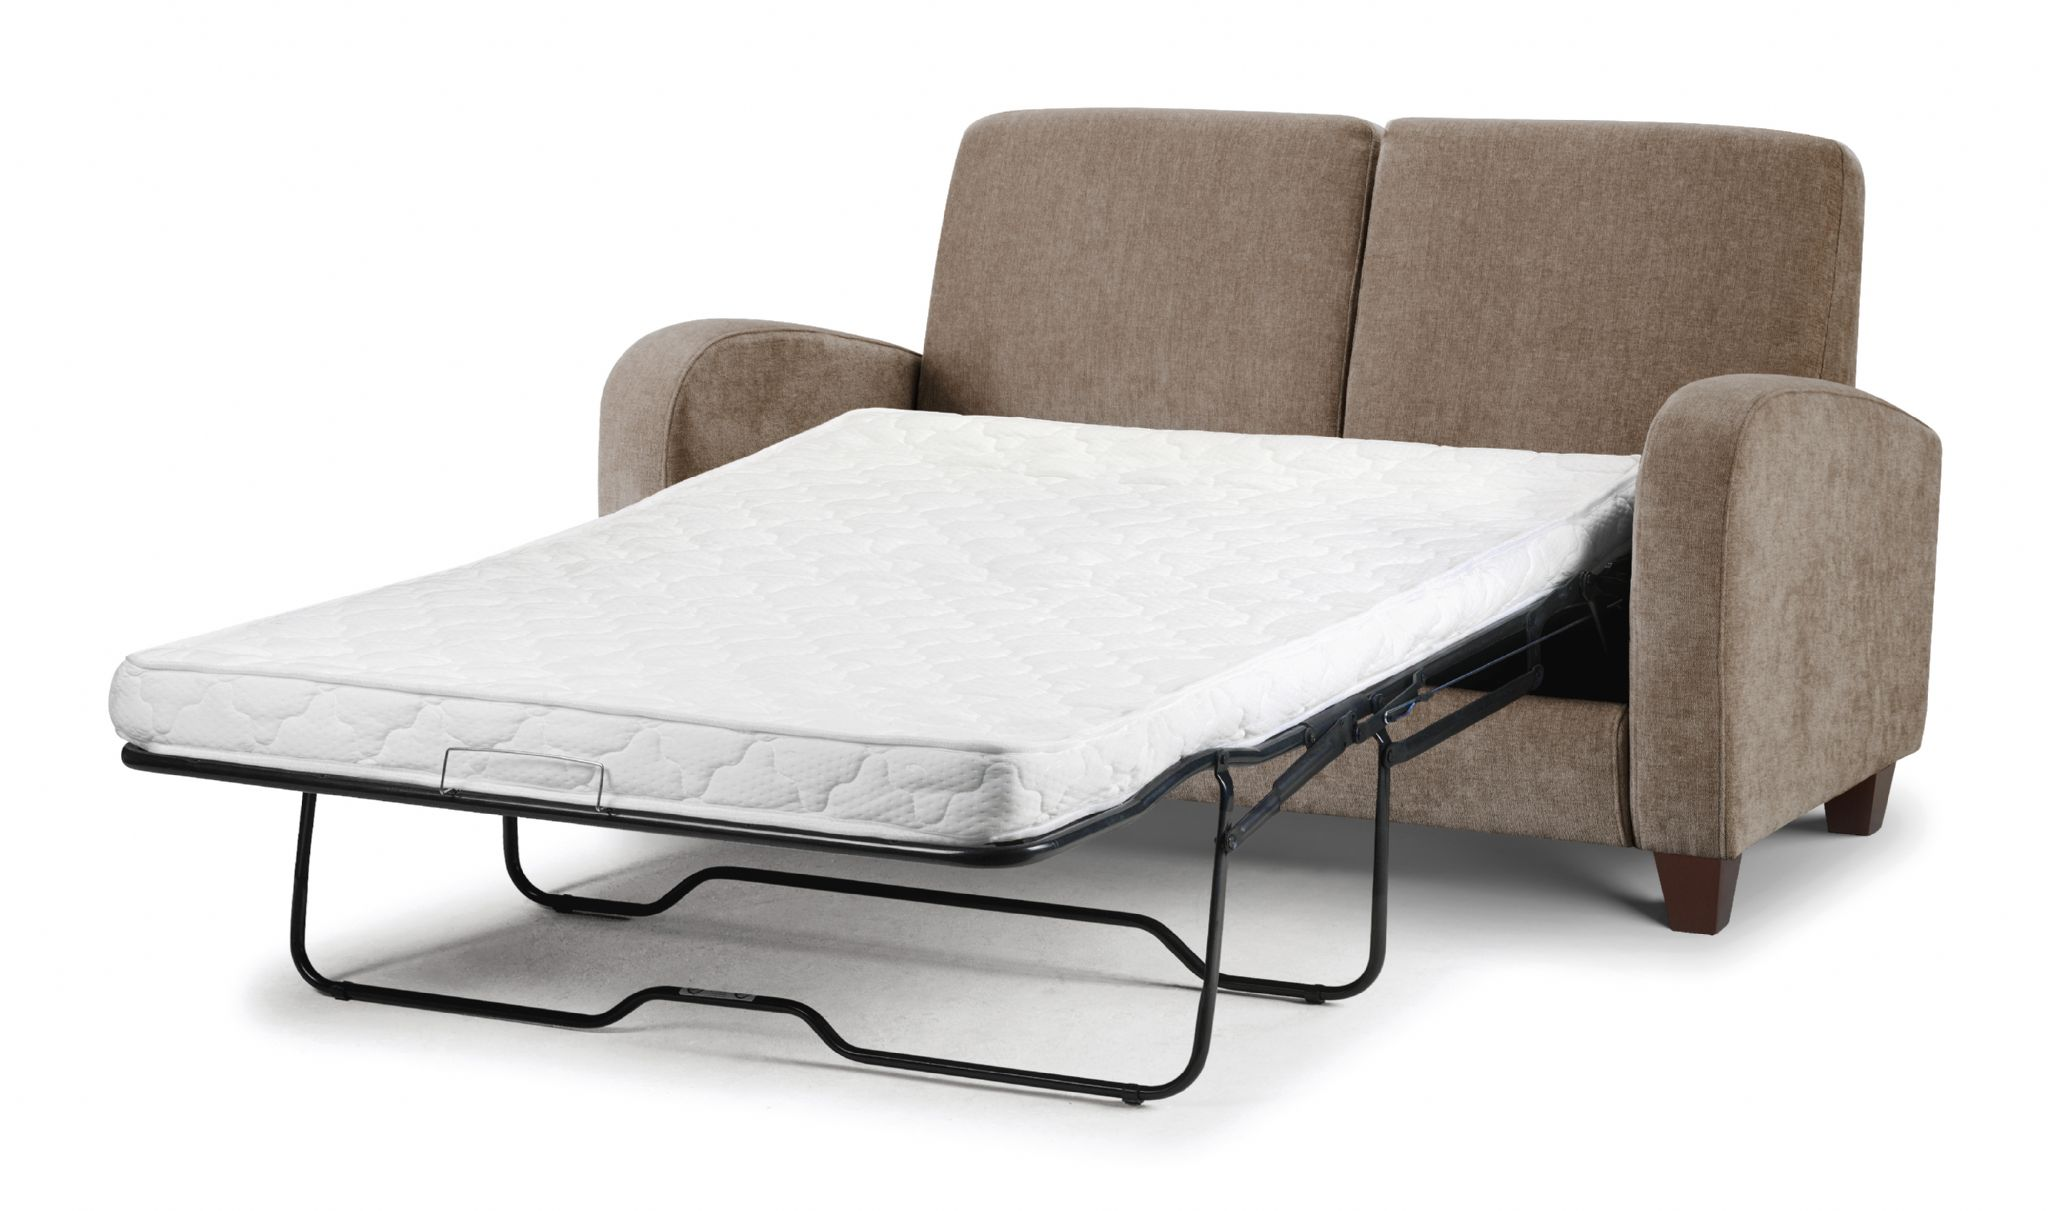 Pavia Luxurious Mink Chenille Fold Out Sofa Bed Jb578